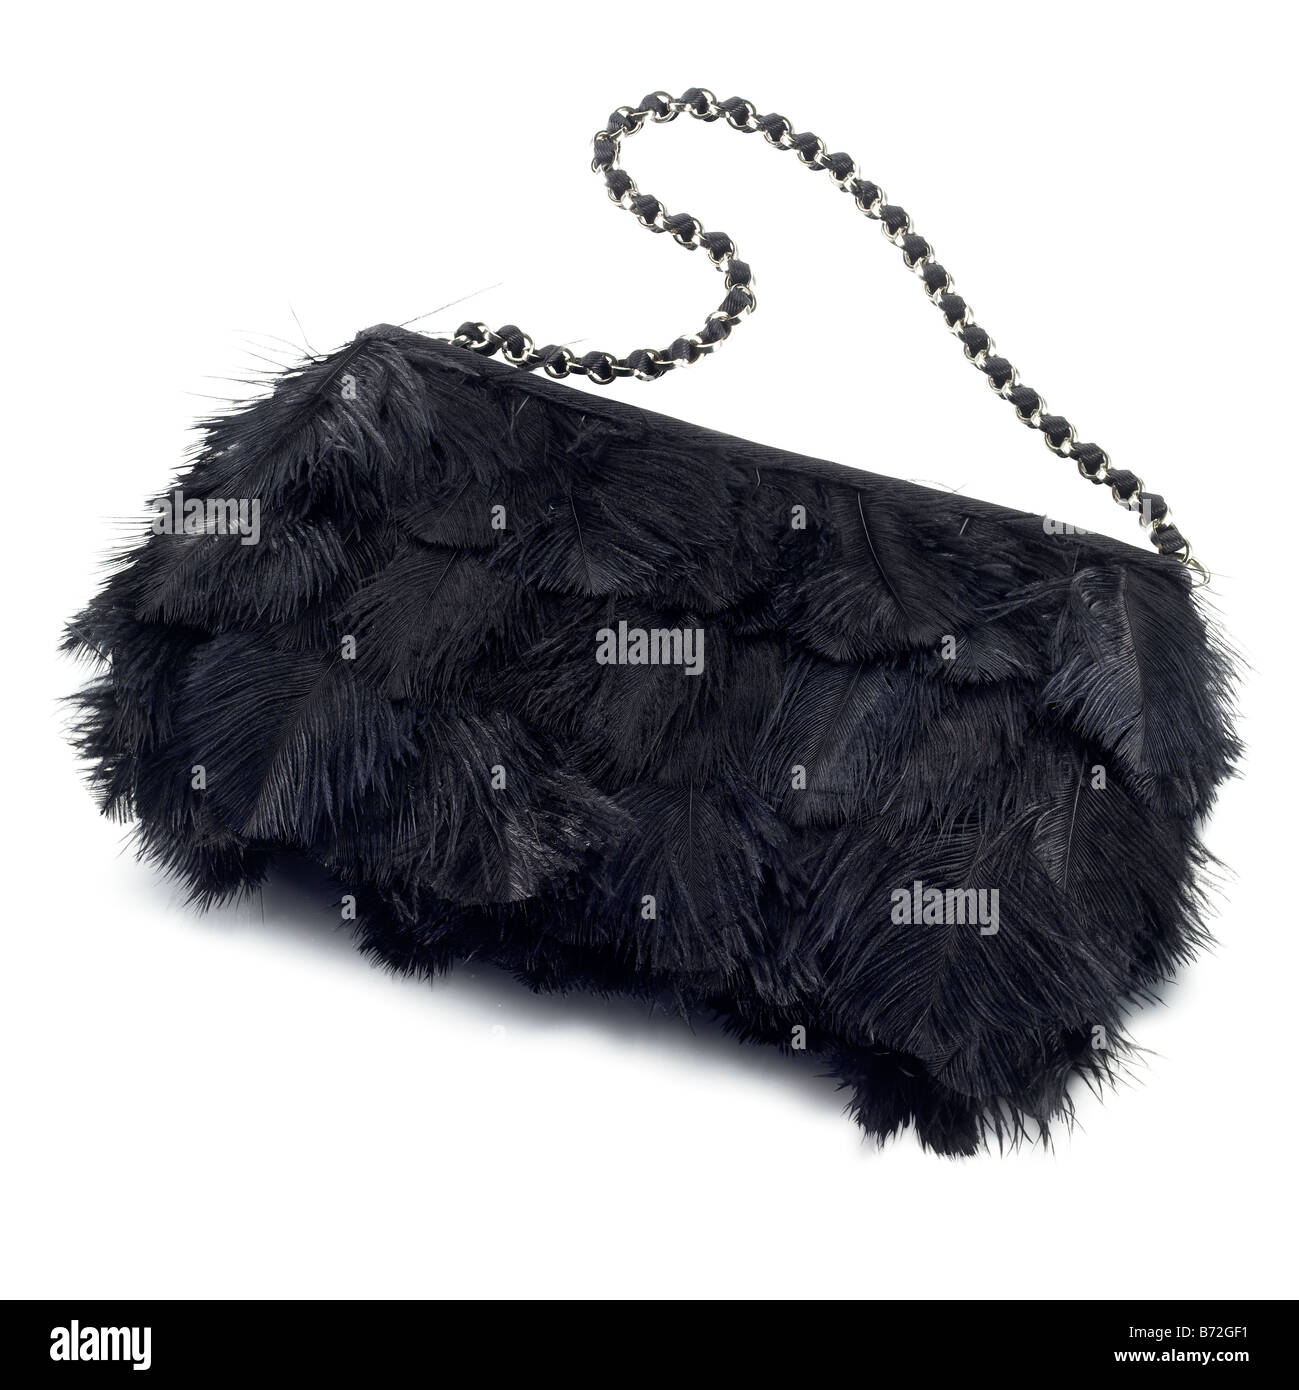 black feather covered ladies bag clutch purse - Stock Image